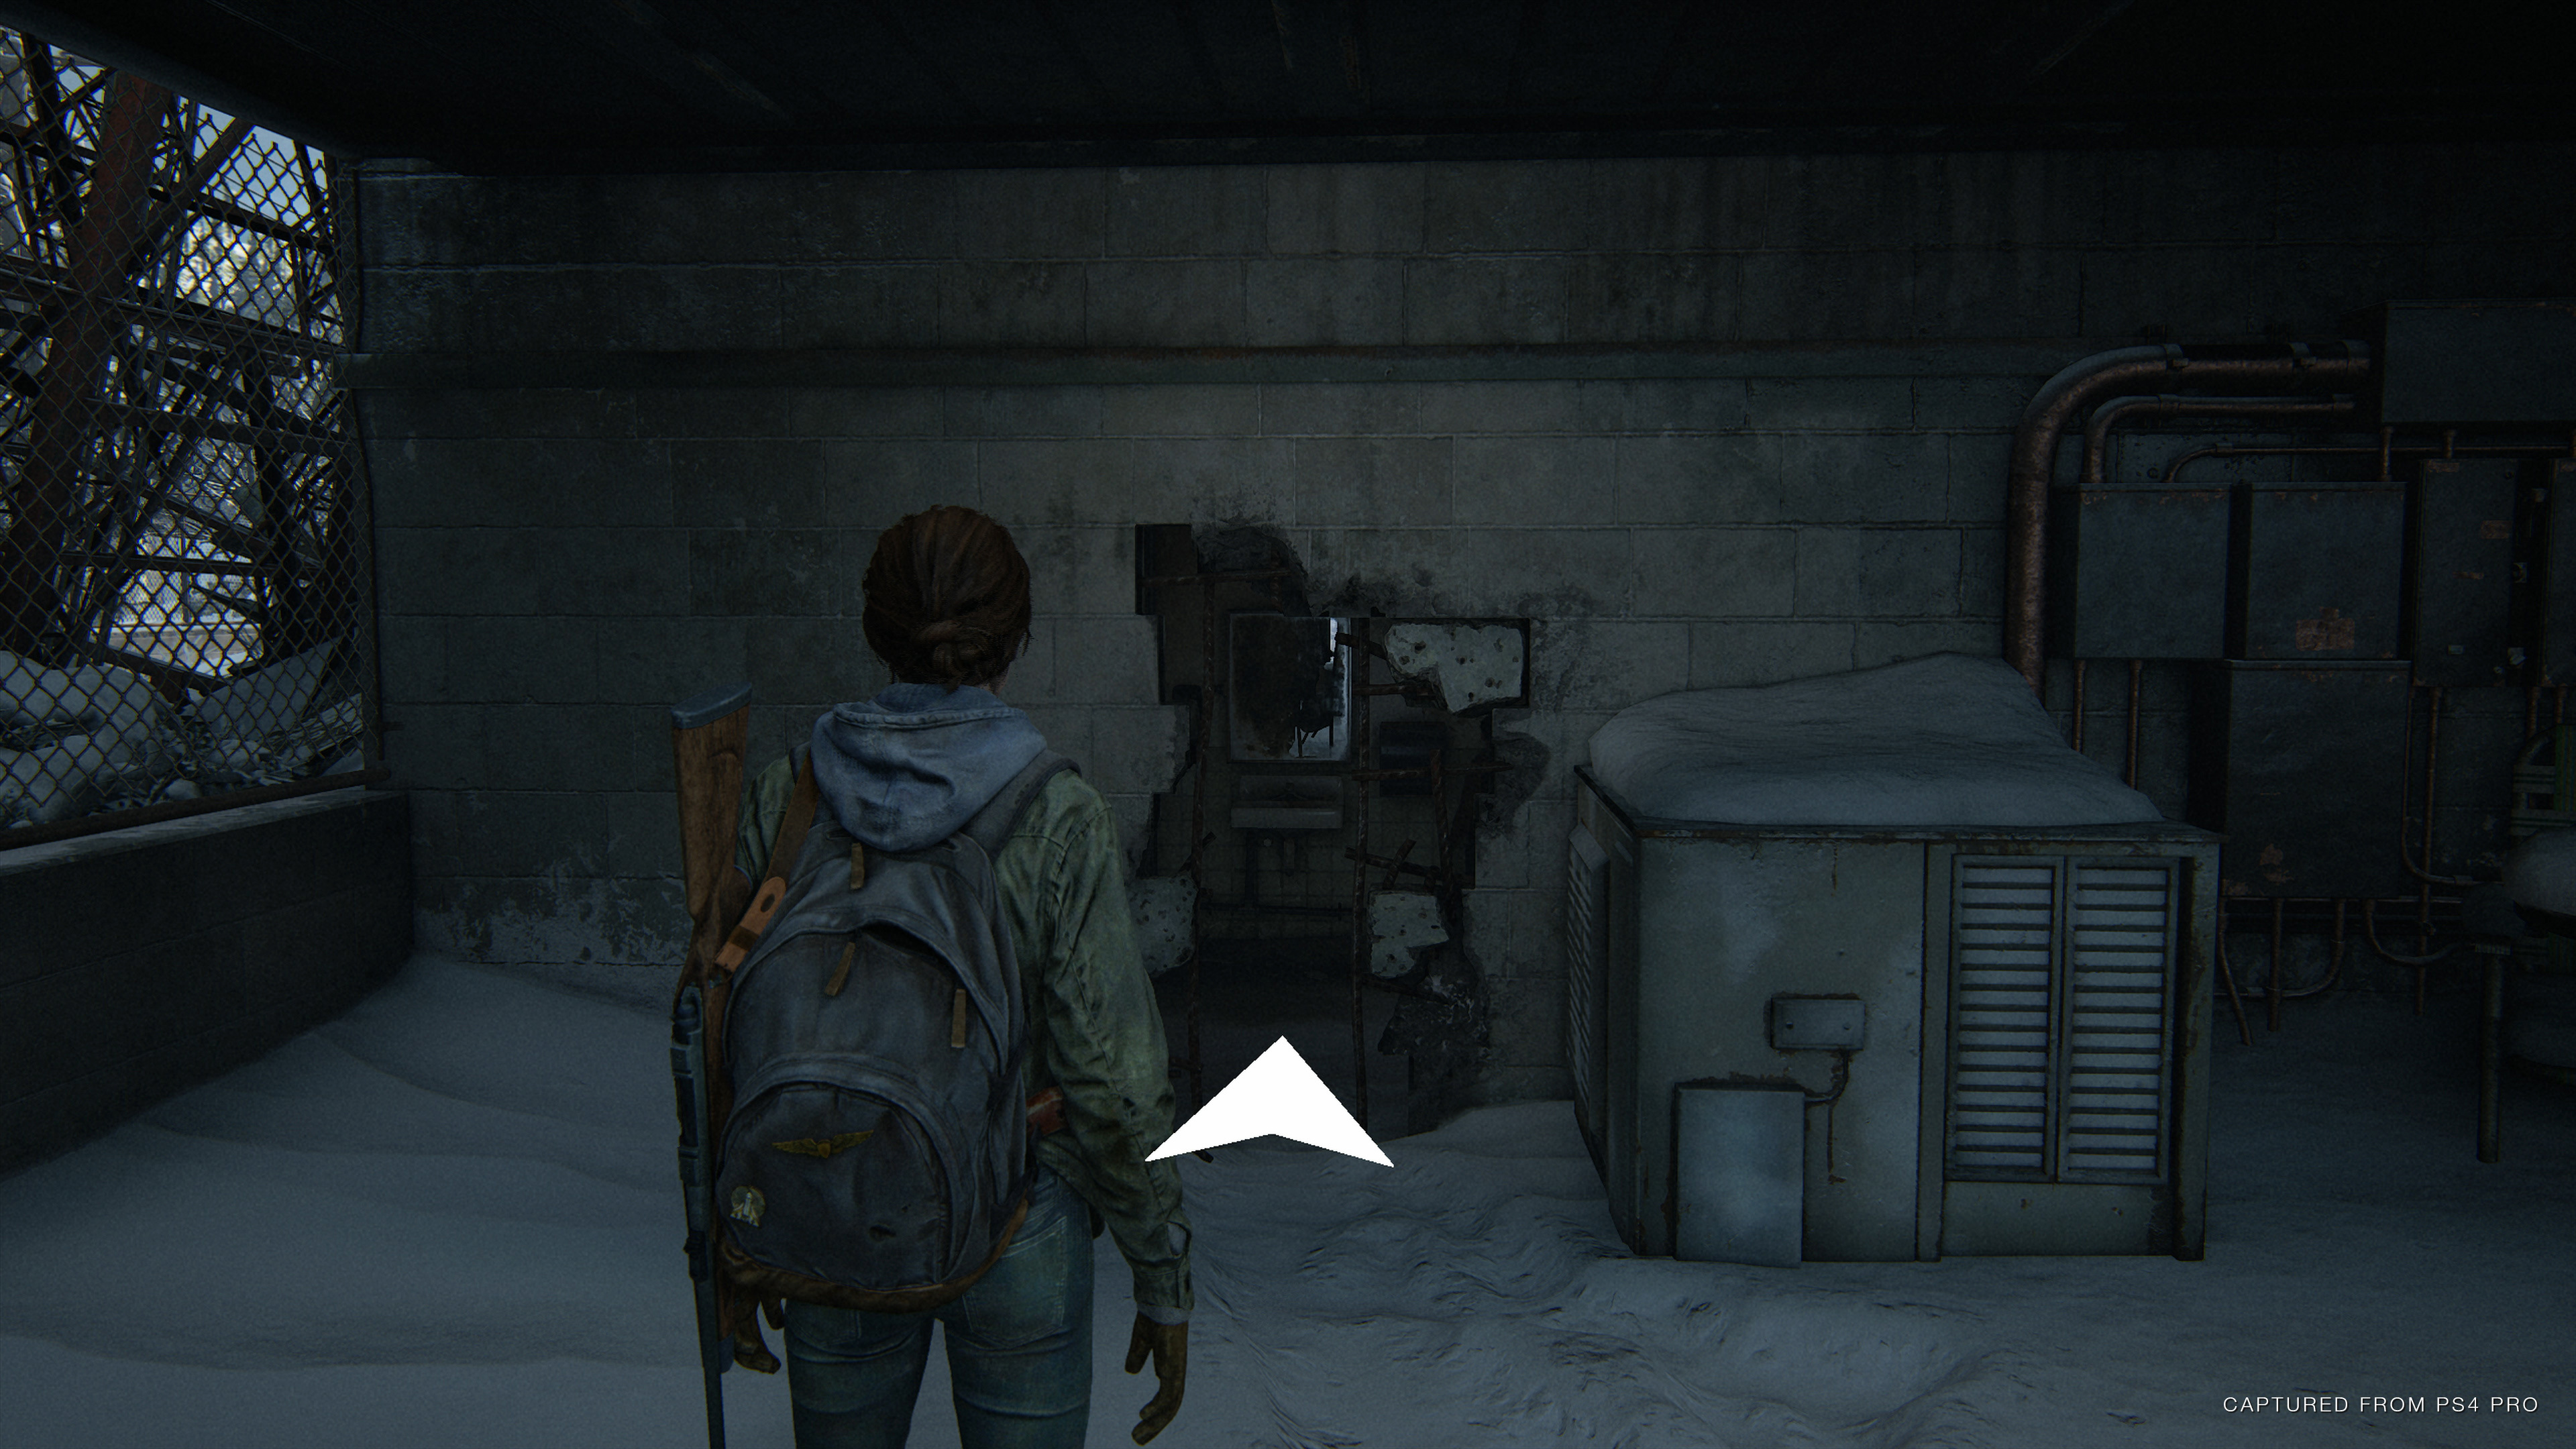 The player in front of a large hole in the wall, with a navigation assistance arrow pointing towards it